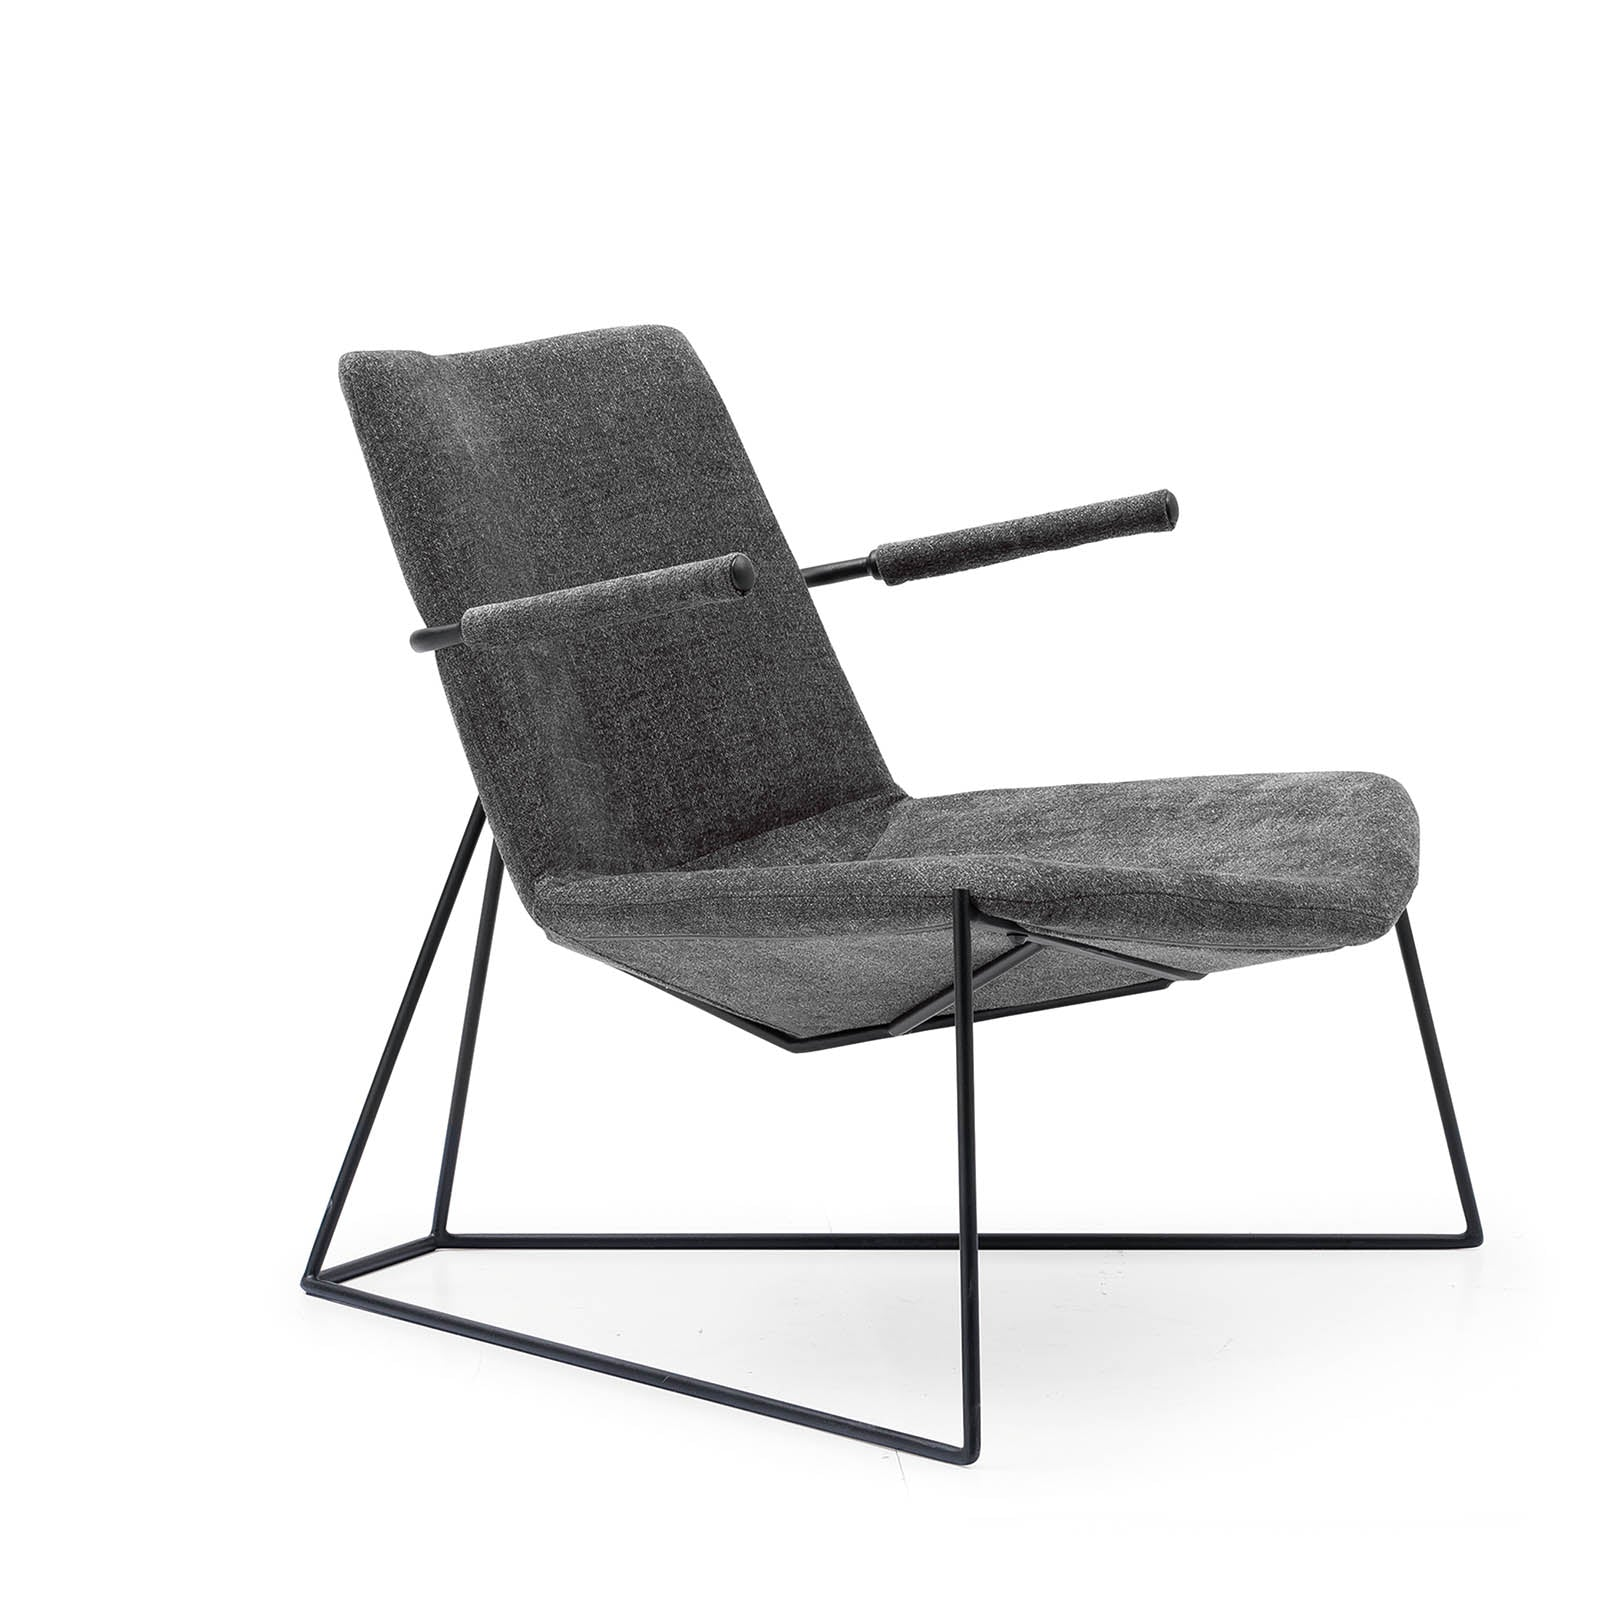 Swell Lugano Lounge Chair Lc032 Machost Co Dining Chair Design Ideas Machostcouk